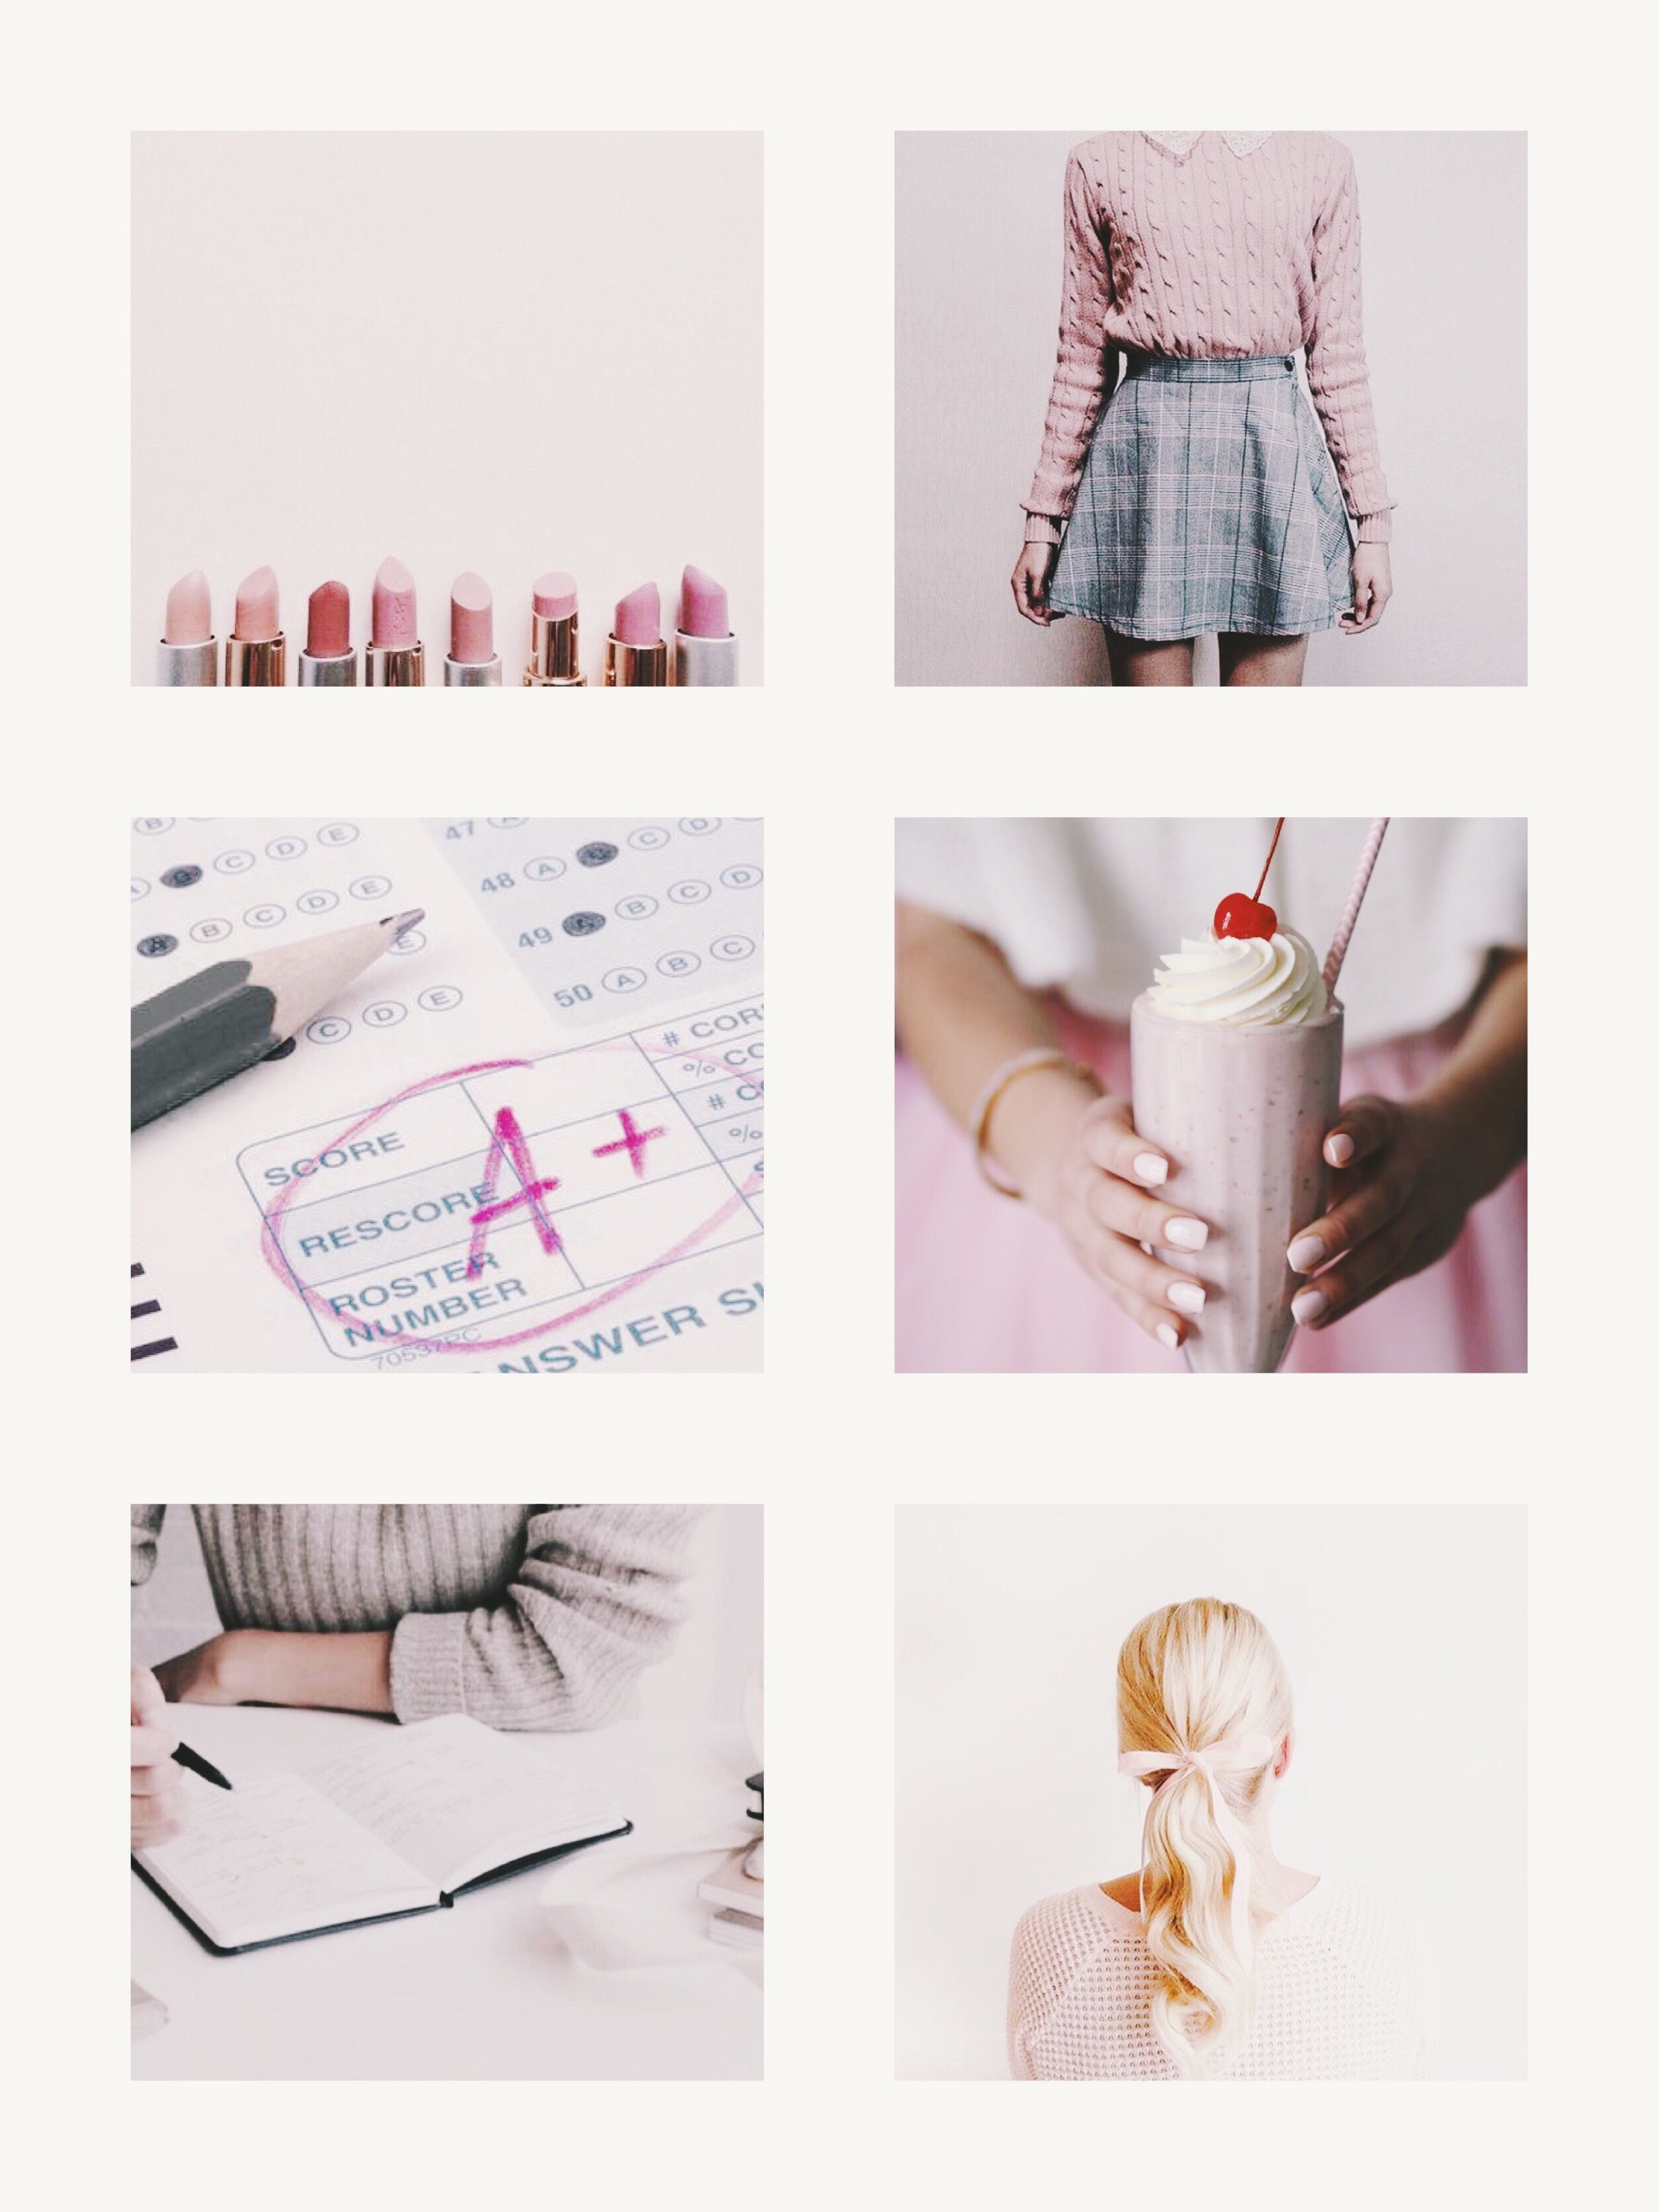 Betty Cooper Aesthetic Bettycooper Aesthetic Moodboard Riverdale Betty Cooper Aesthetic Riverdale Aesthetic Aesthetic Collage